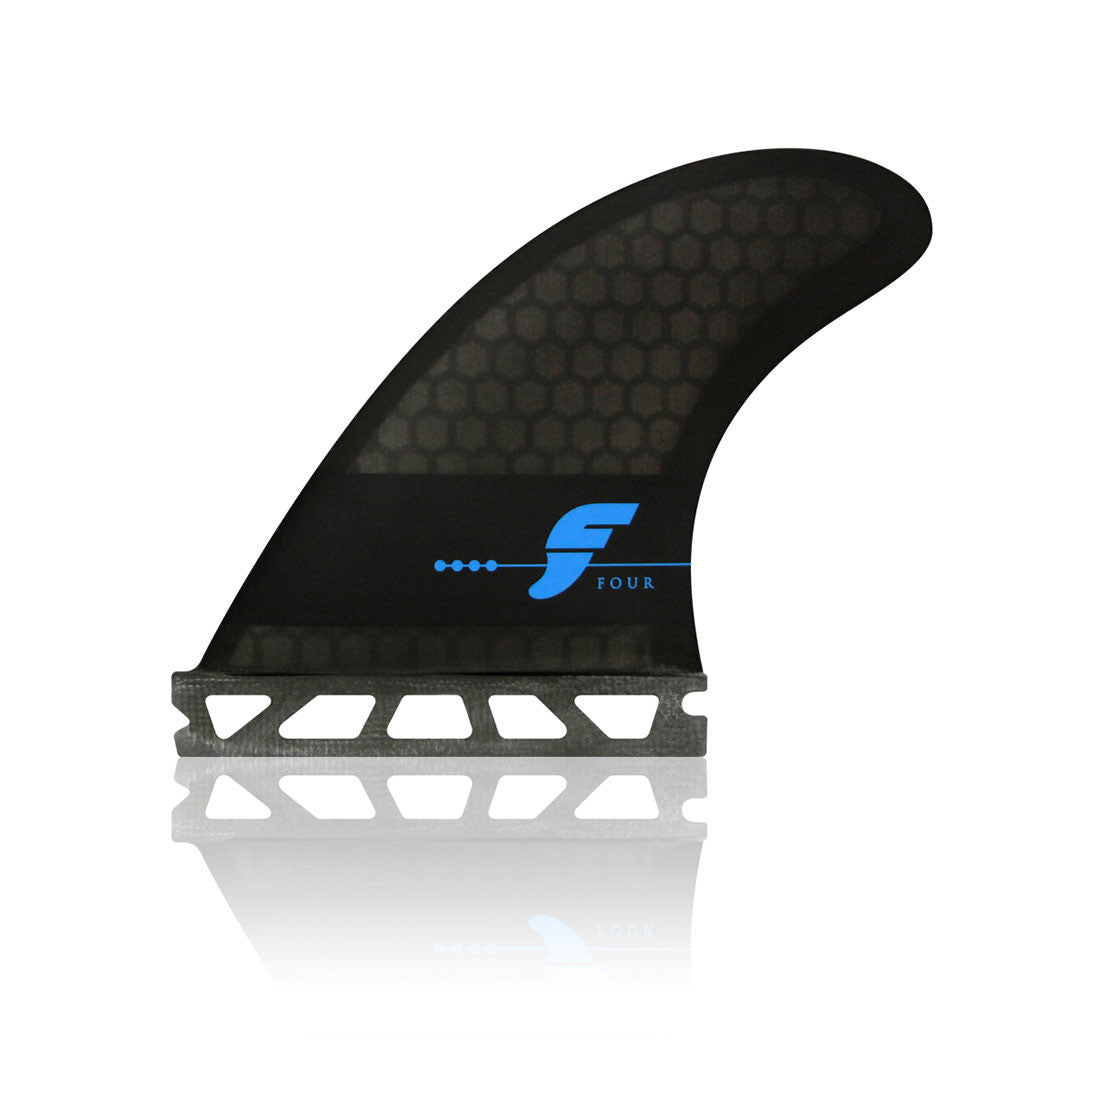 Futures Fins Honeycomb F4 Smoke Thruster Set (Small)